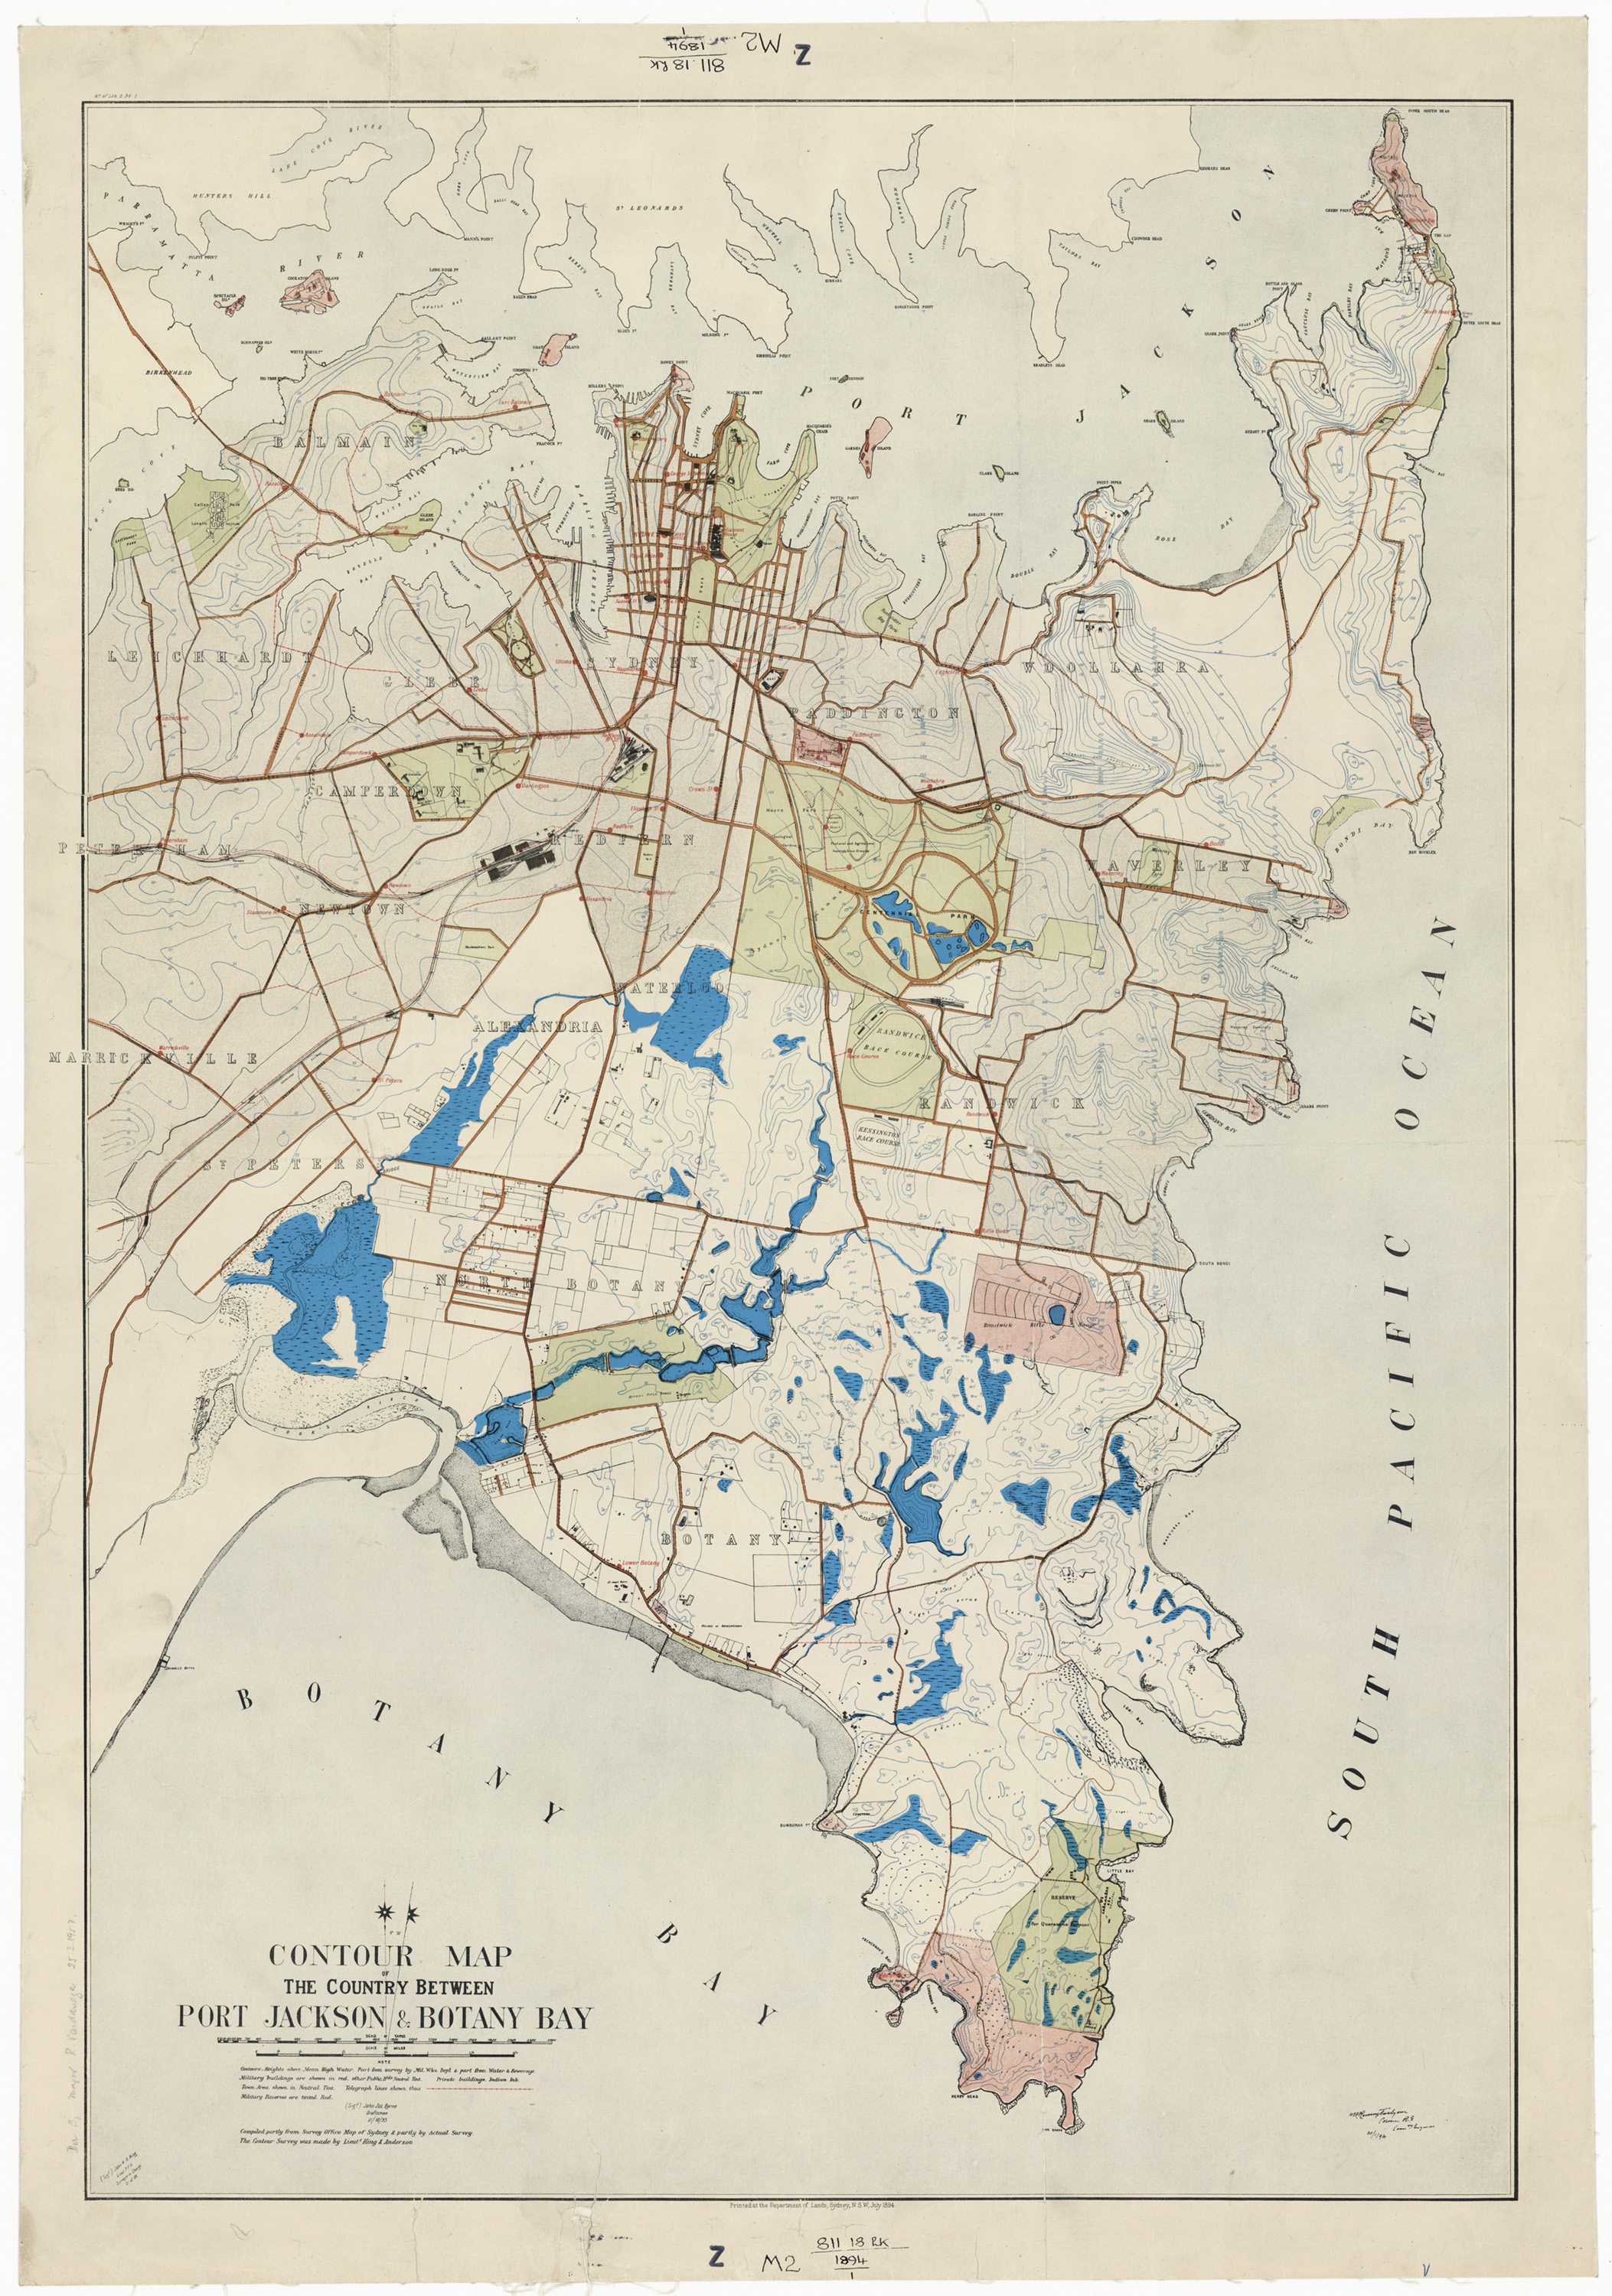 Contour map of the country between Port Jackson & Botany Bay, Sydney, Department of Lands, 1894 - The blue areas, as overlaid by the author, indicate swamp boundaries.